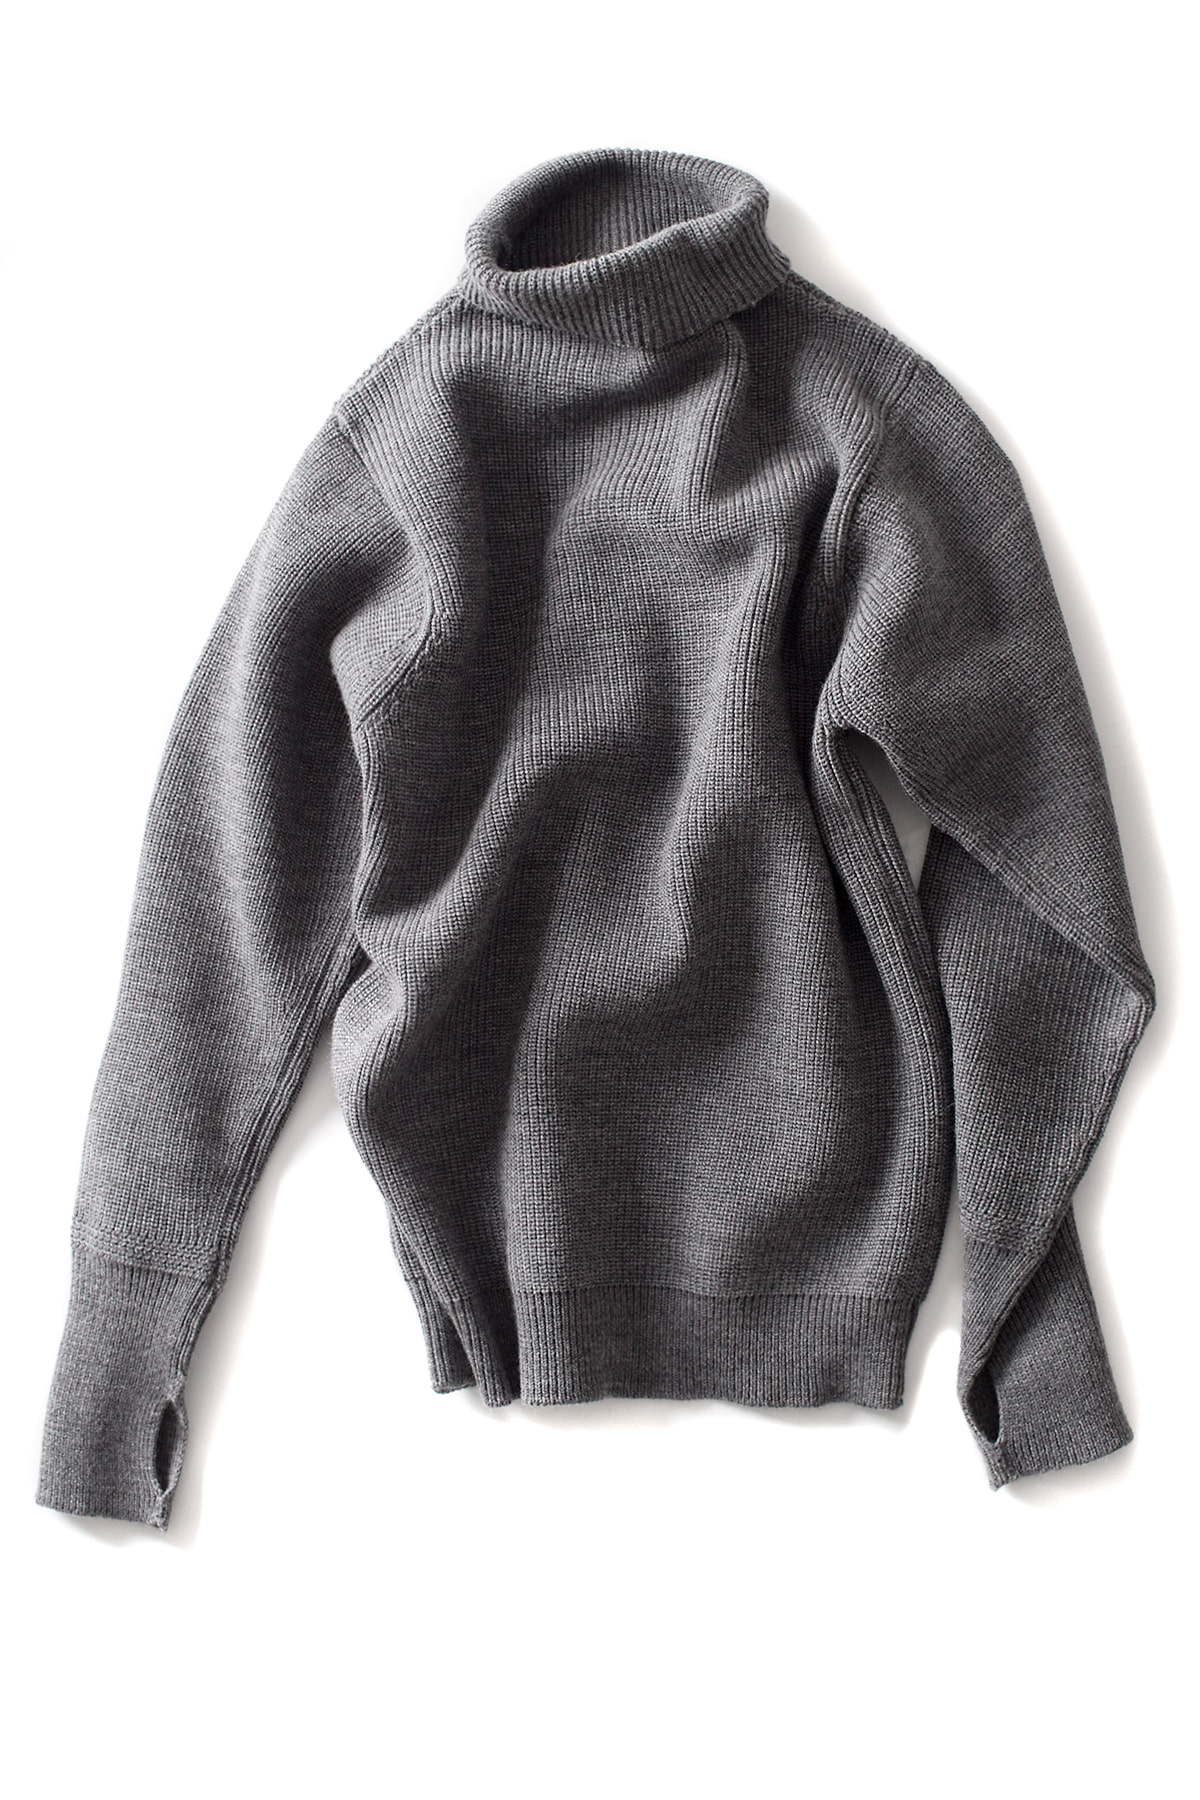 Andersen-Andersen : Sailor Turtleneck (Grey)